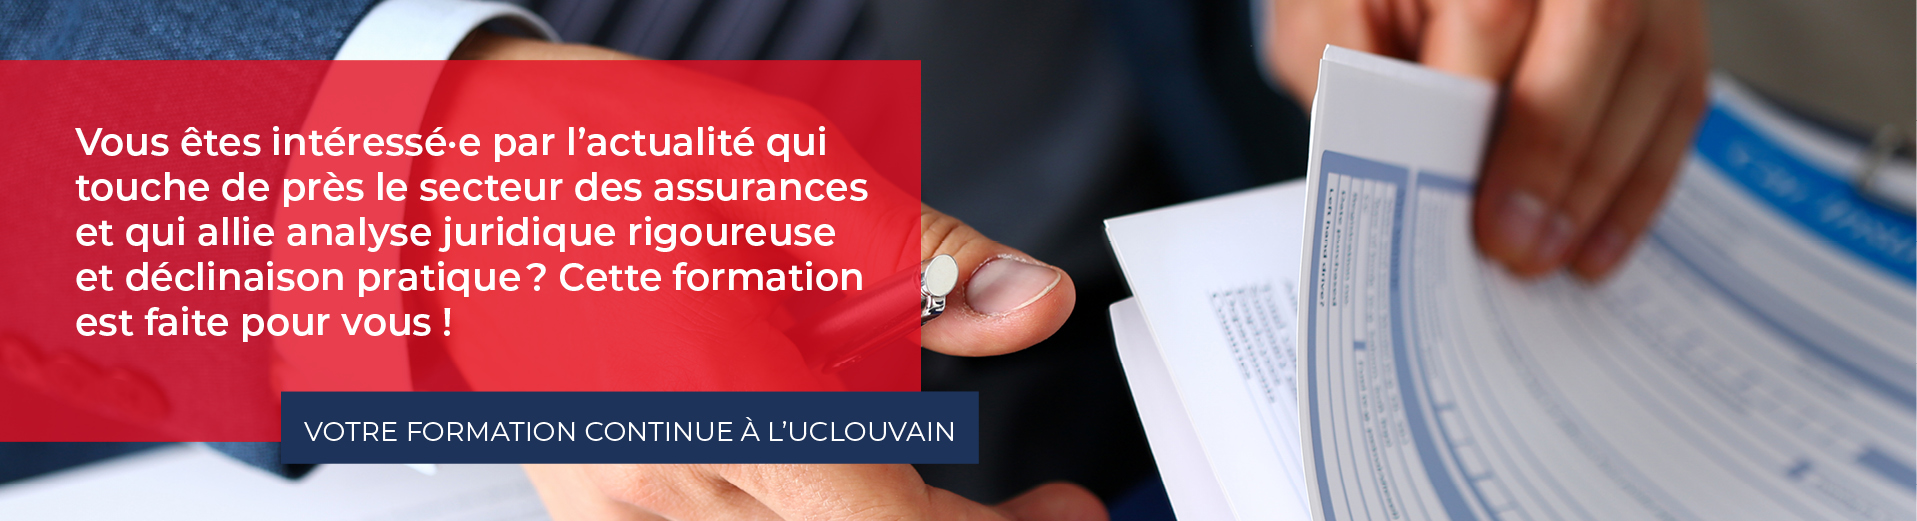 PratiquesProsAssurances_Header_Homepage.jpg